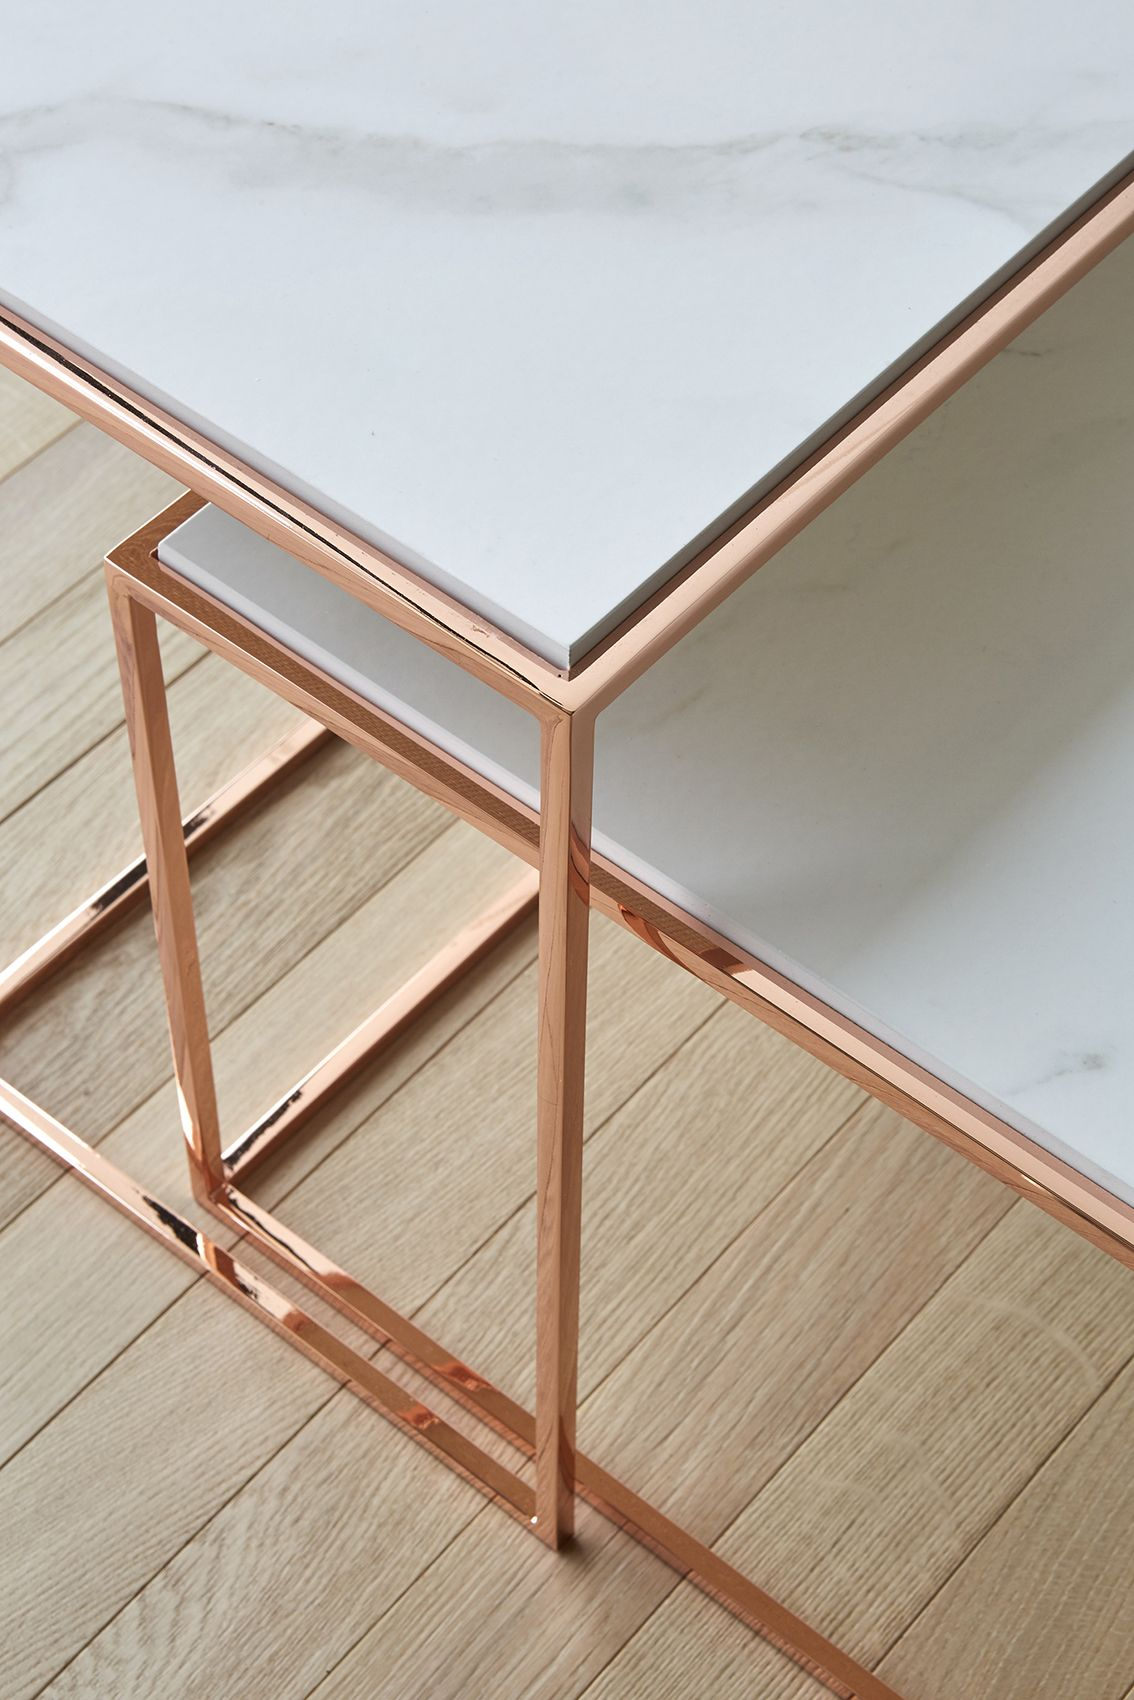 Cicca – coffee table #miniforms #interior #furniture #tables #takeabreak #interiordesign